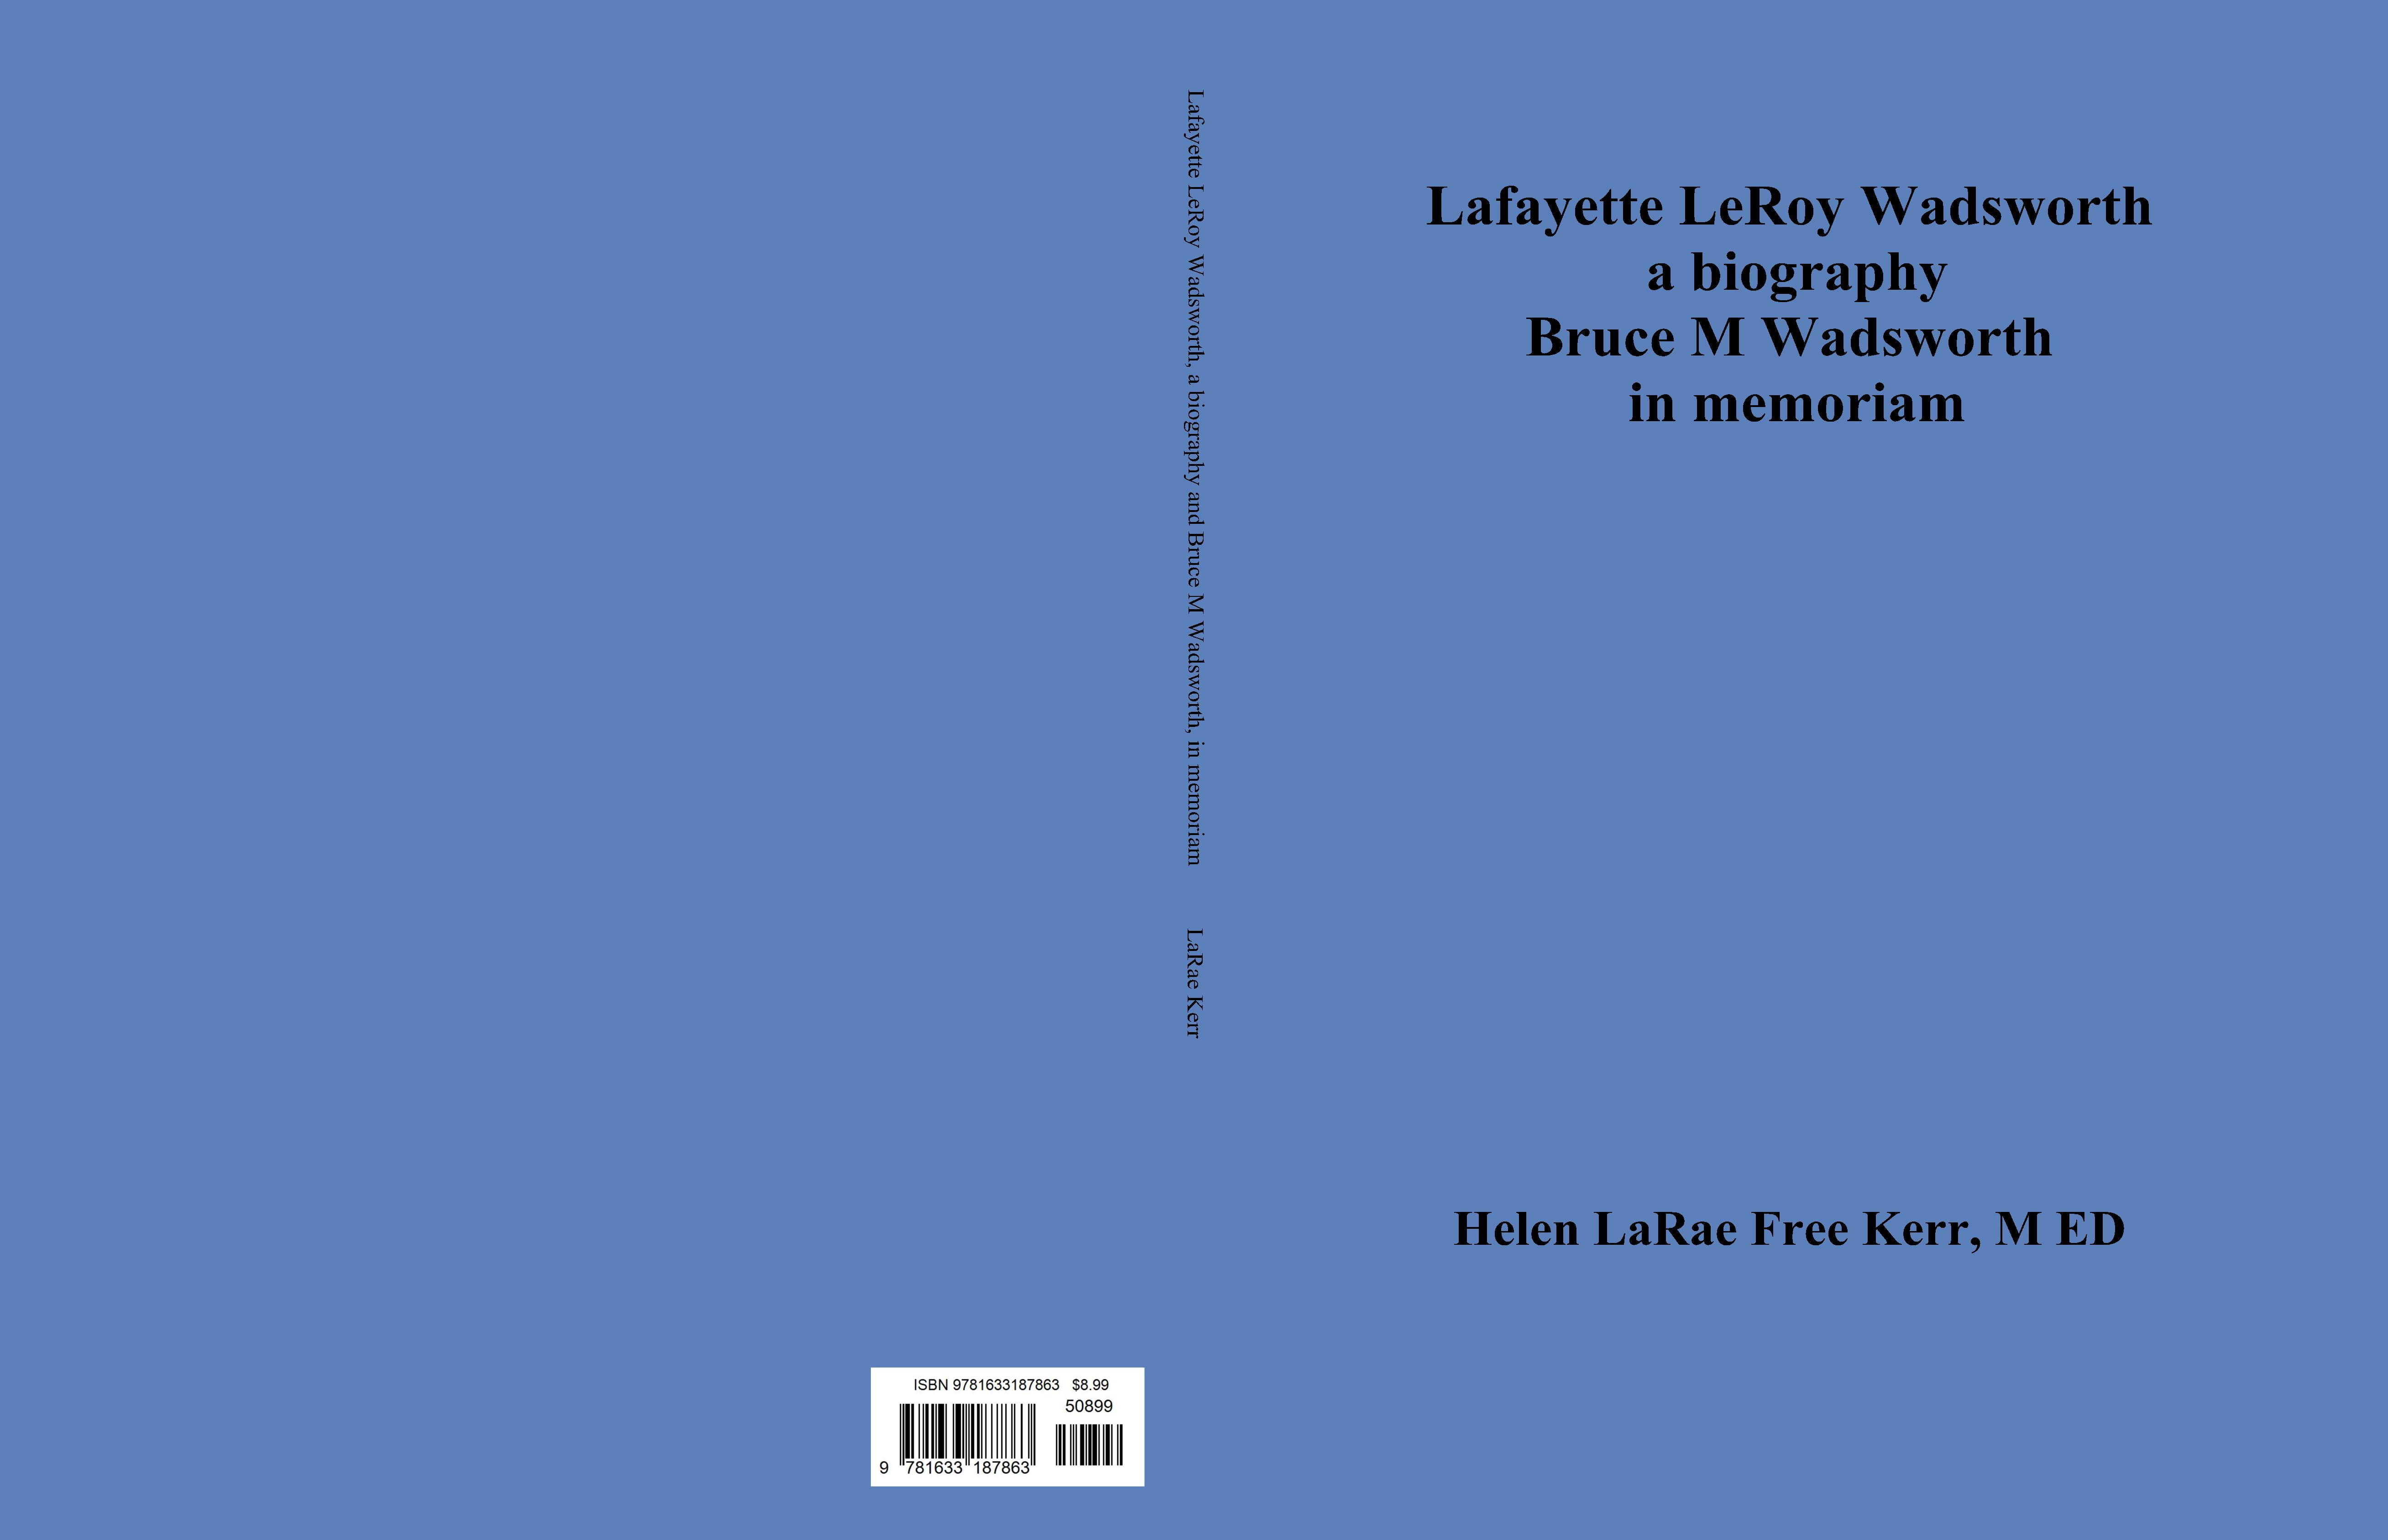 Lafayette LeRoy Wadsworth a biography Bruce M Wadsworth in memoriam cover image